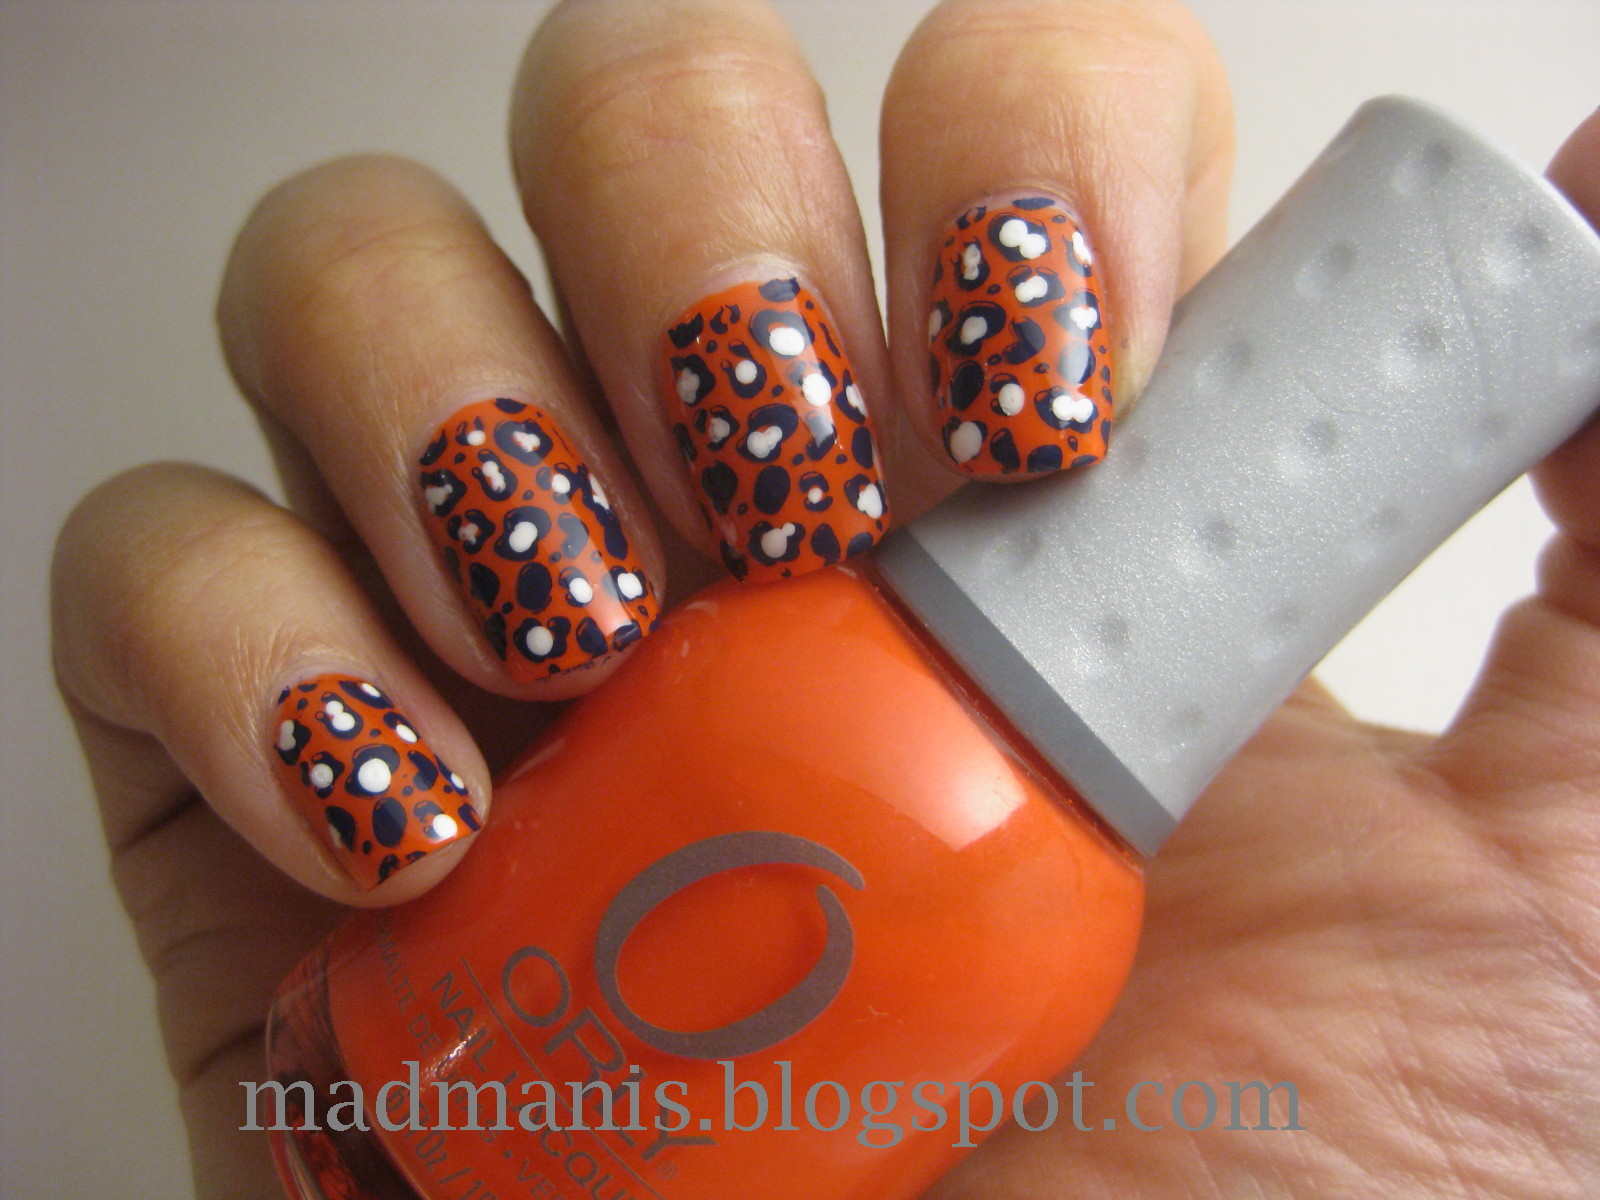 MaD Manis: Orly Orange Punch leopard